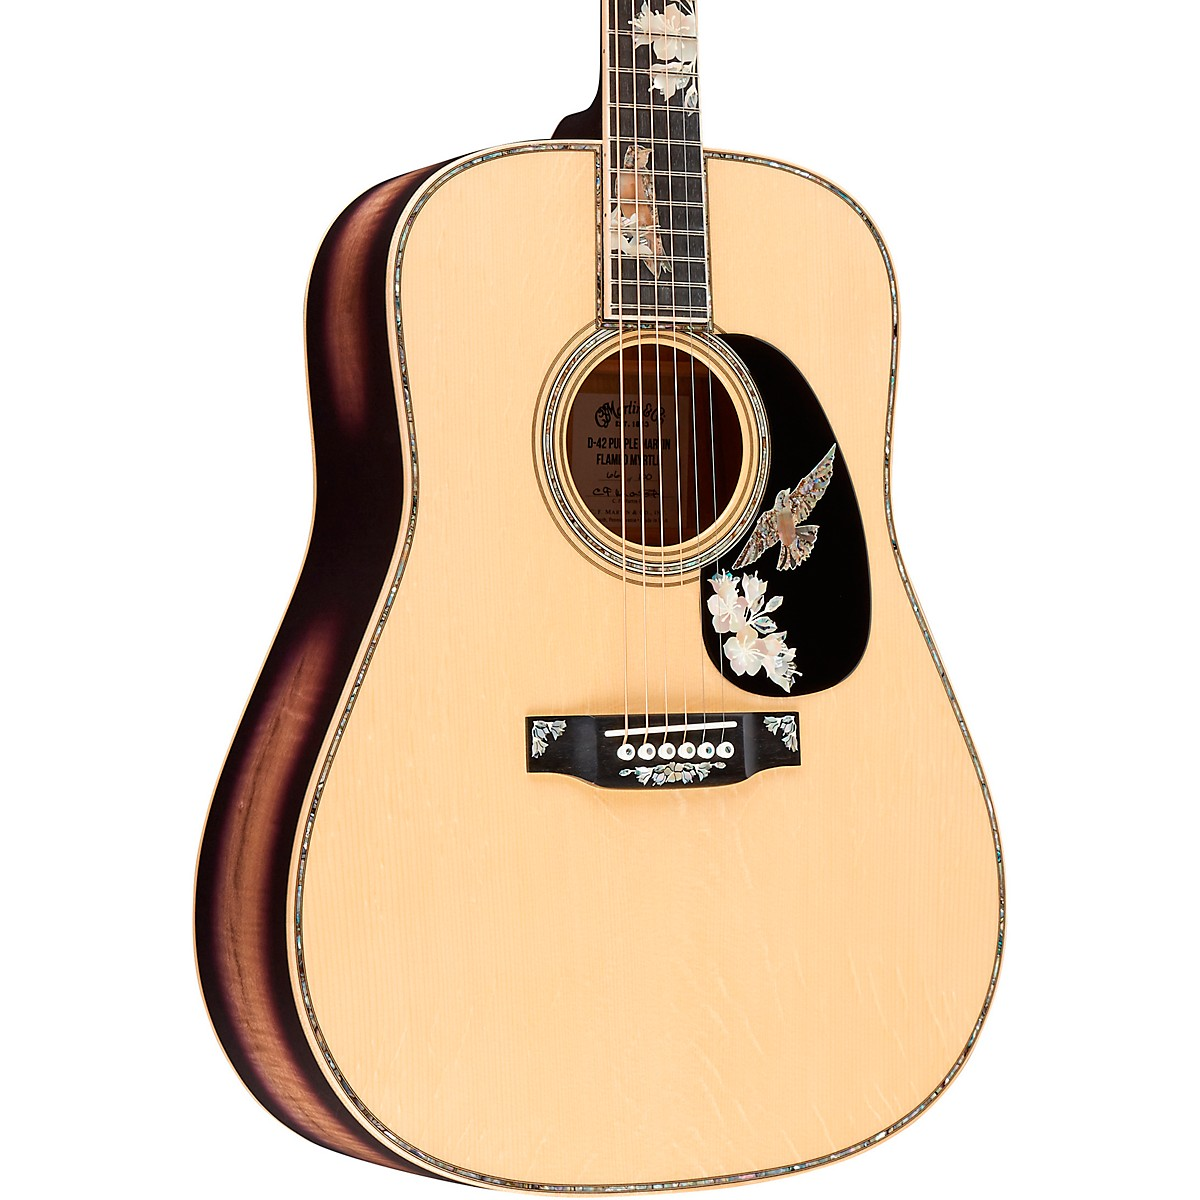 Martin D-42 Purple Martin Limited-Edition Flamed Myrtle Dreadnought Acoustic Guitar